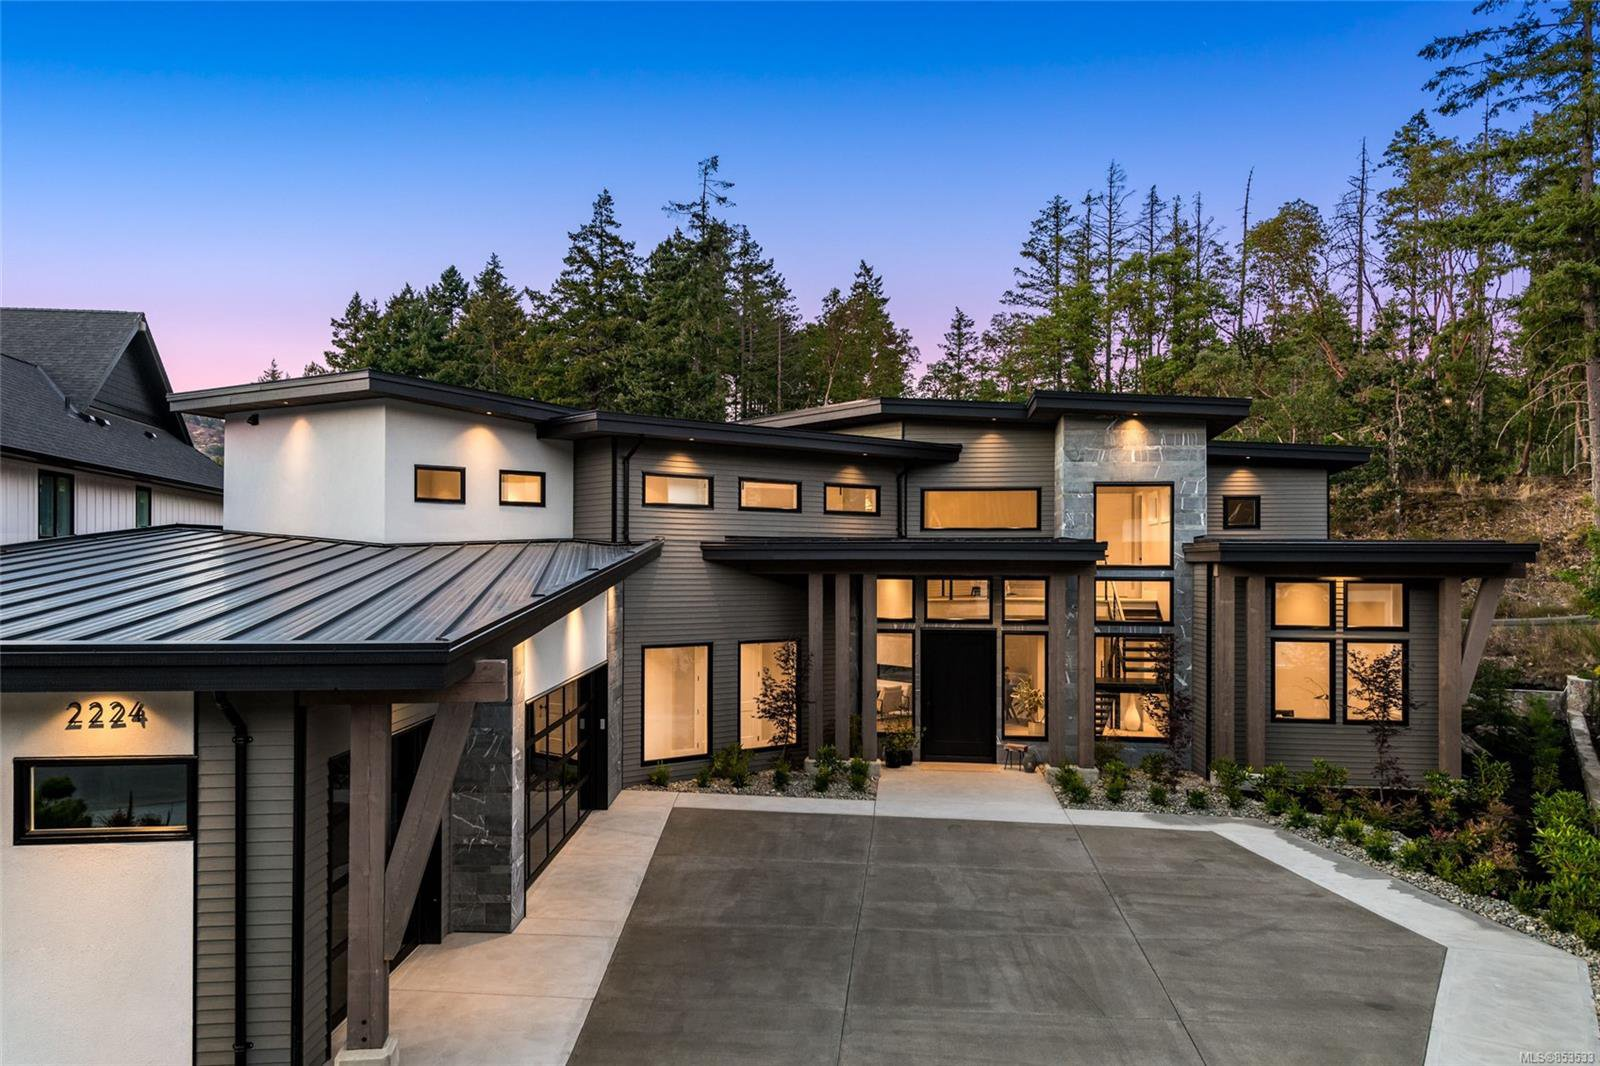 Main Photo: 2224 Riviera Pl in : La Bear Mountain Single Family Detached for sale (Langford)  : MLS®# 853533